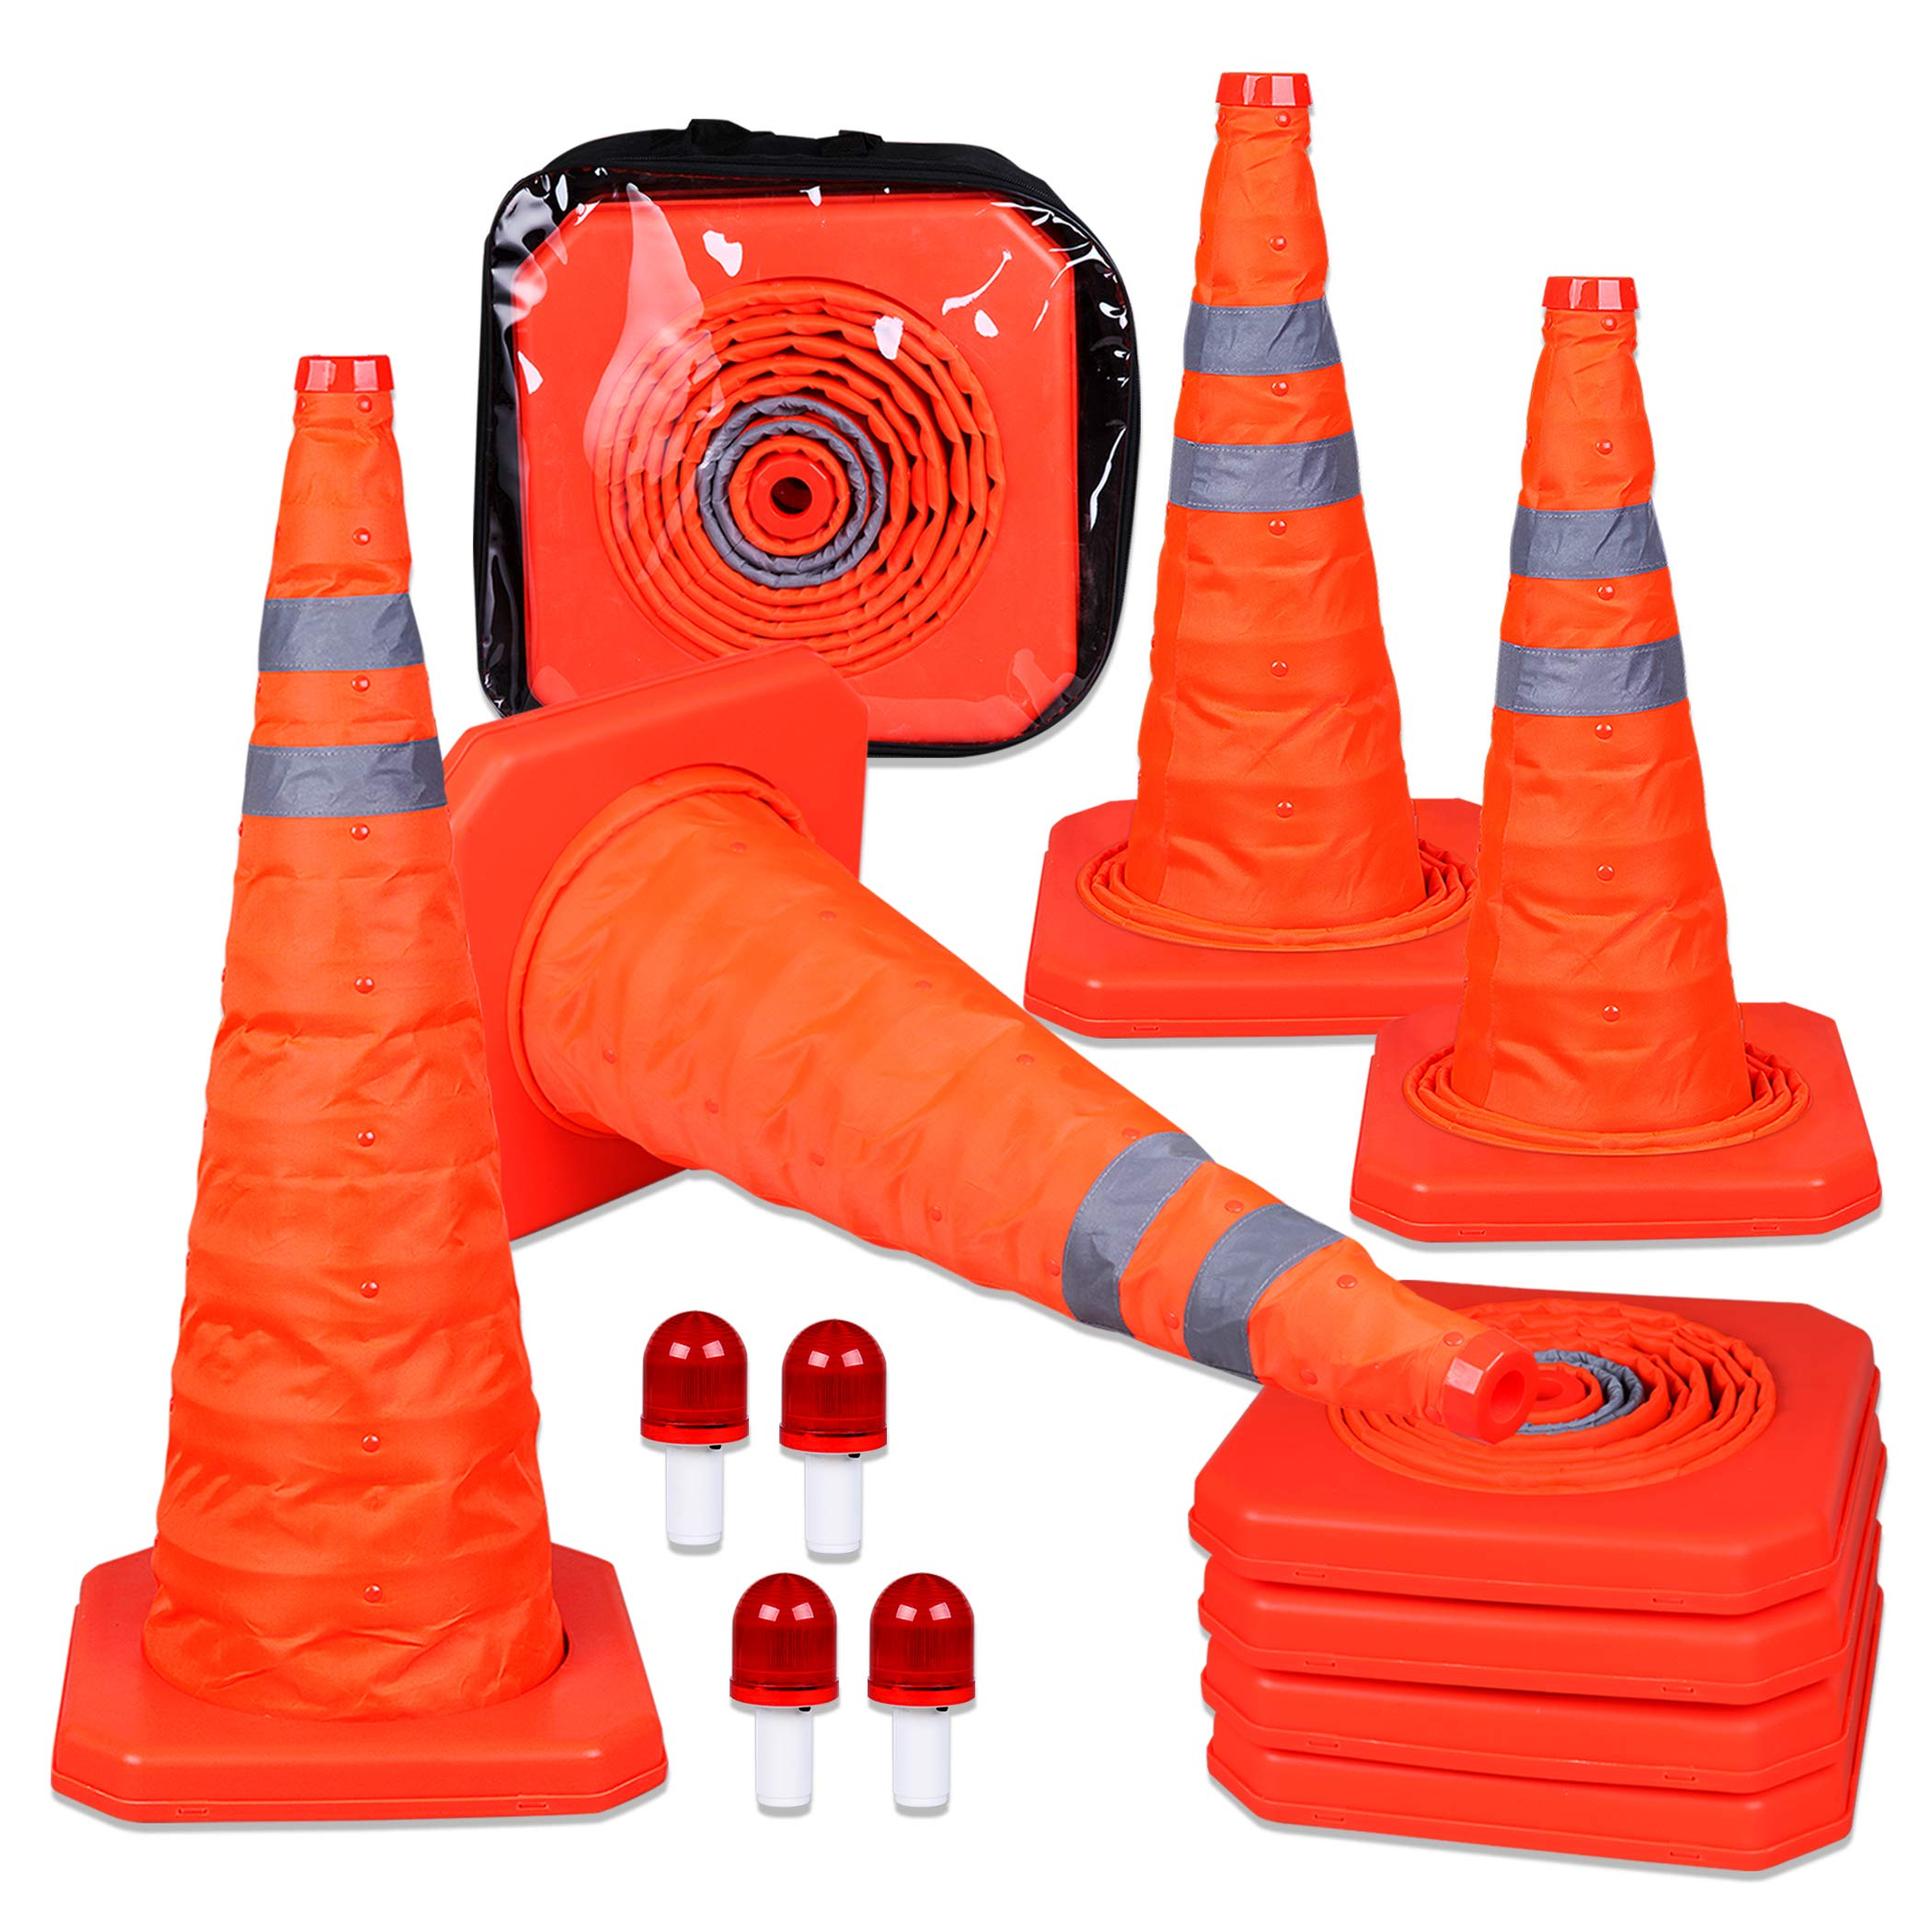 CARTMAN 27.5 inch Collapsible Traffic Cones with LED Light Multi Purpose Pop up Reflective Safety Cone 4PK by CARTMAN